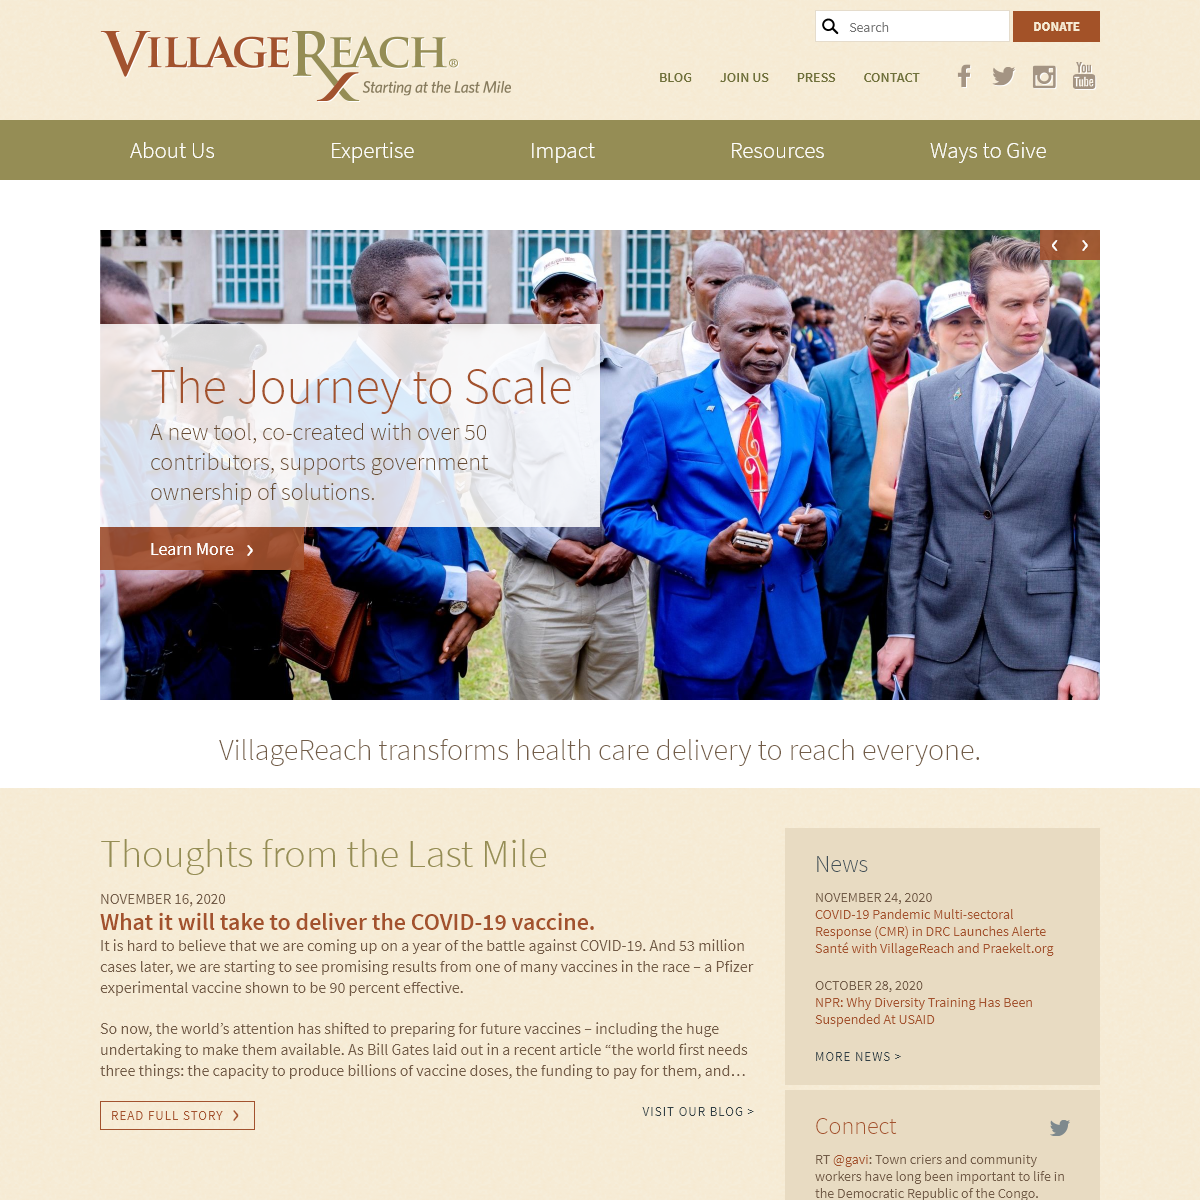 VillageReach transforms health care delivery to reach everyone.